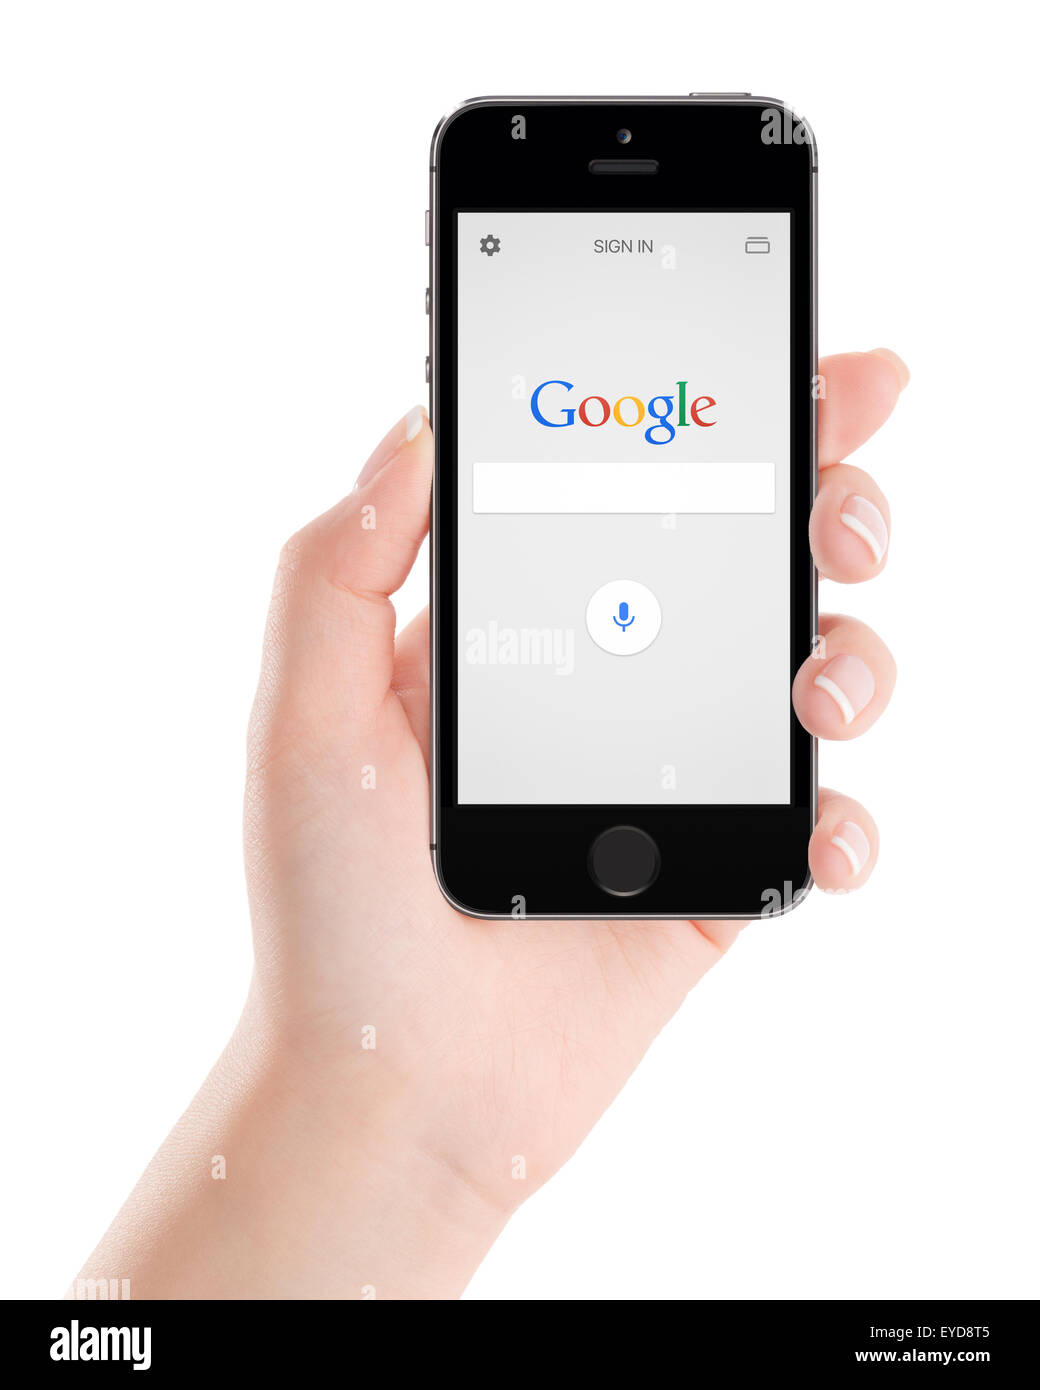 Varna, Bulgaria - February 02, 2015: Google search application on the black Apple iPhone 5s display in female hand. - Stock Image